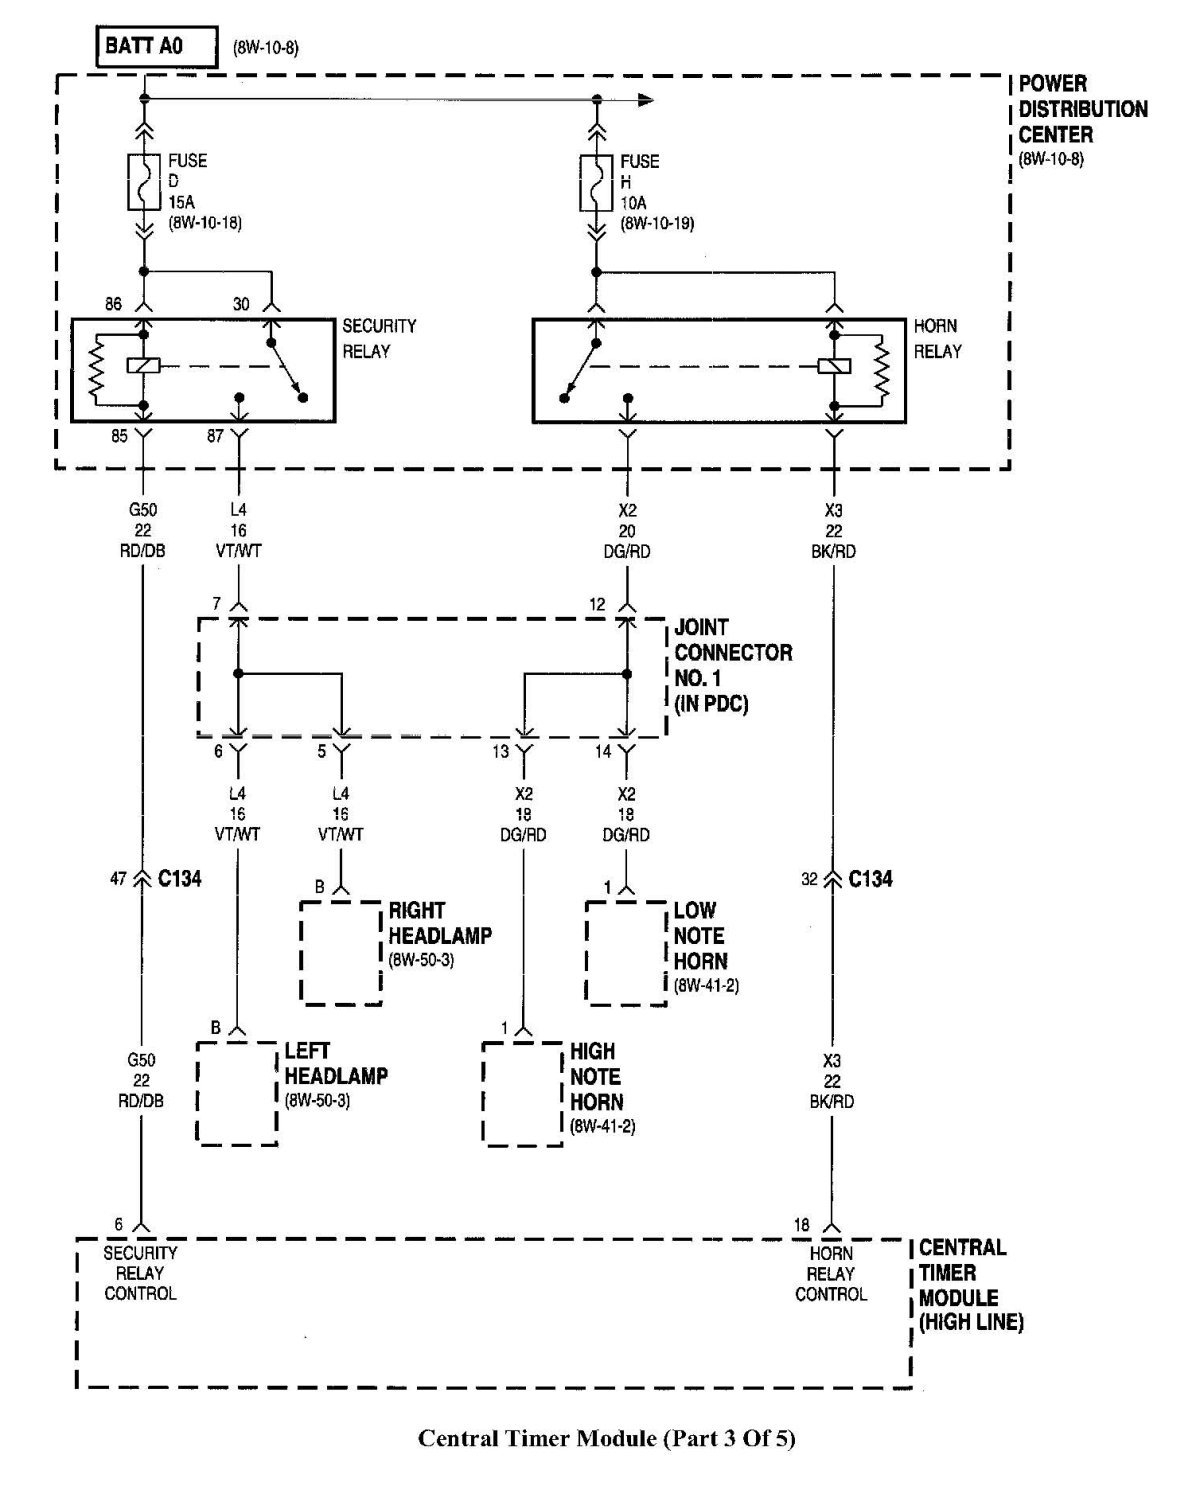 1999 Dodge Ram 2500 Trailer Wiring Diagram | Trailer ...